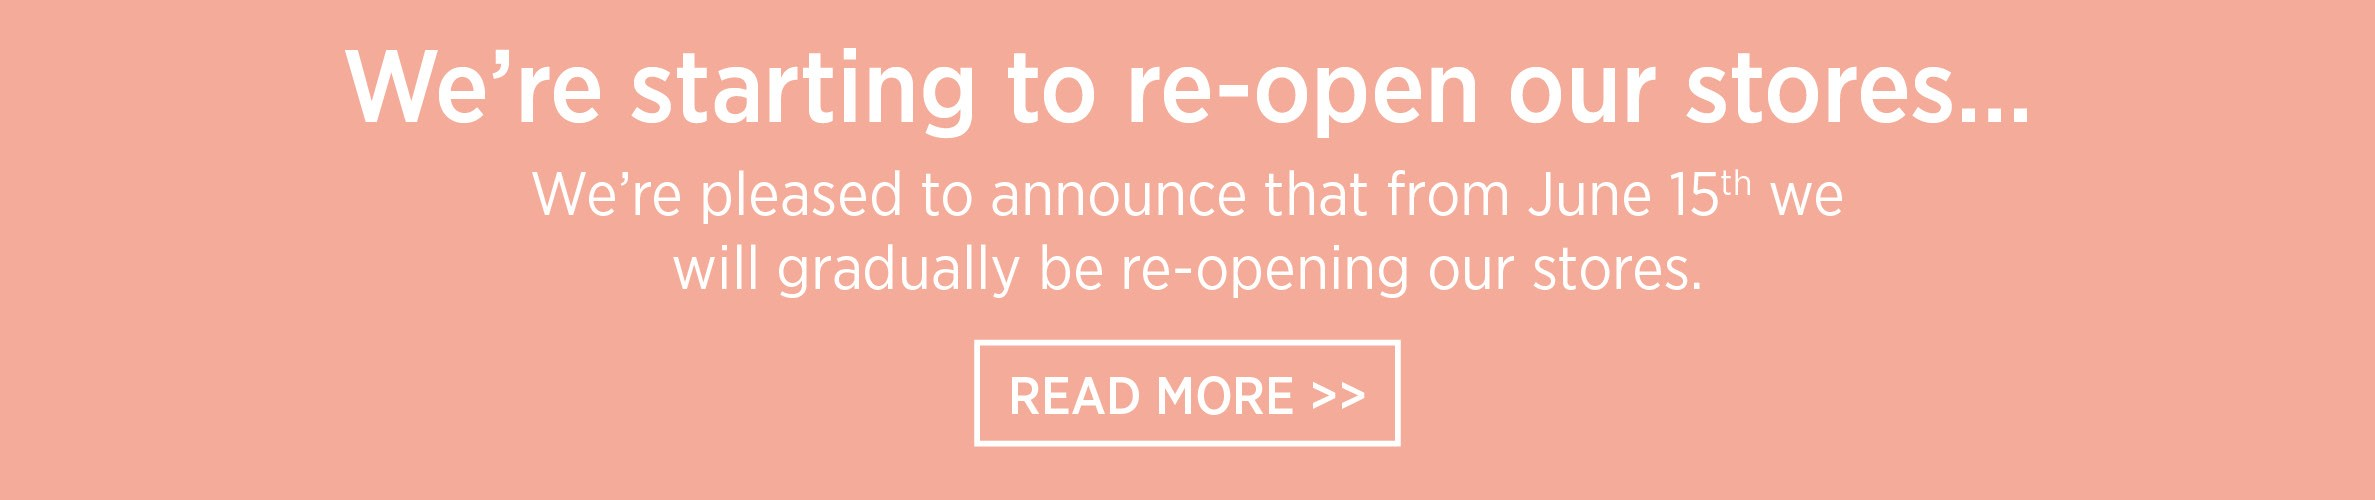 we are starting to re-open our stores